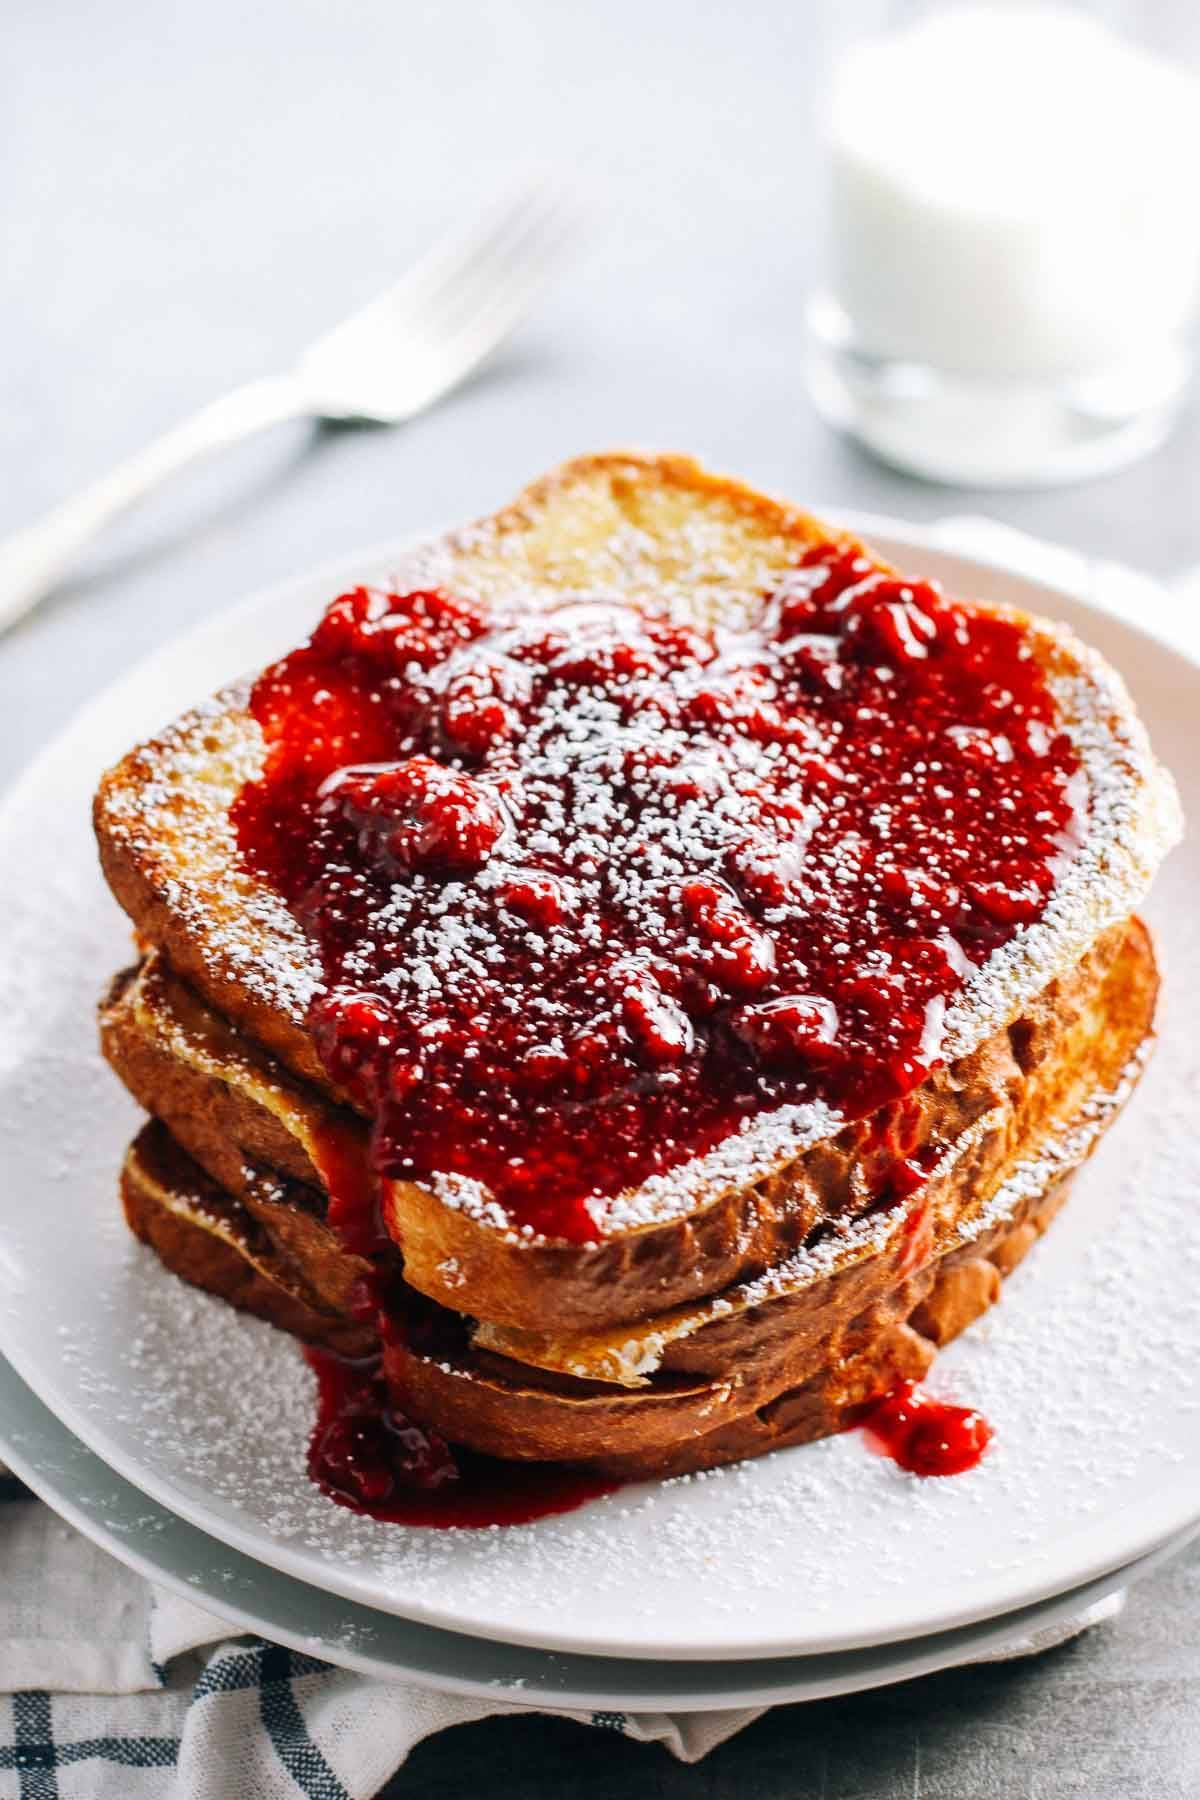 Eggnog French Toast with raspberry sauce.